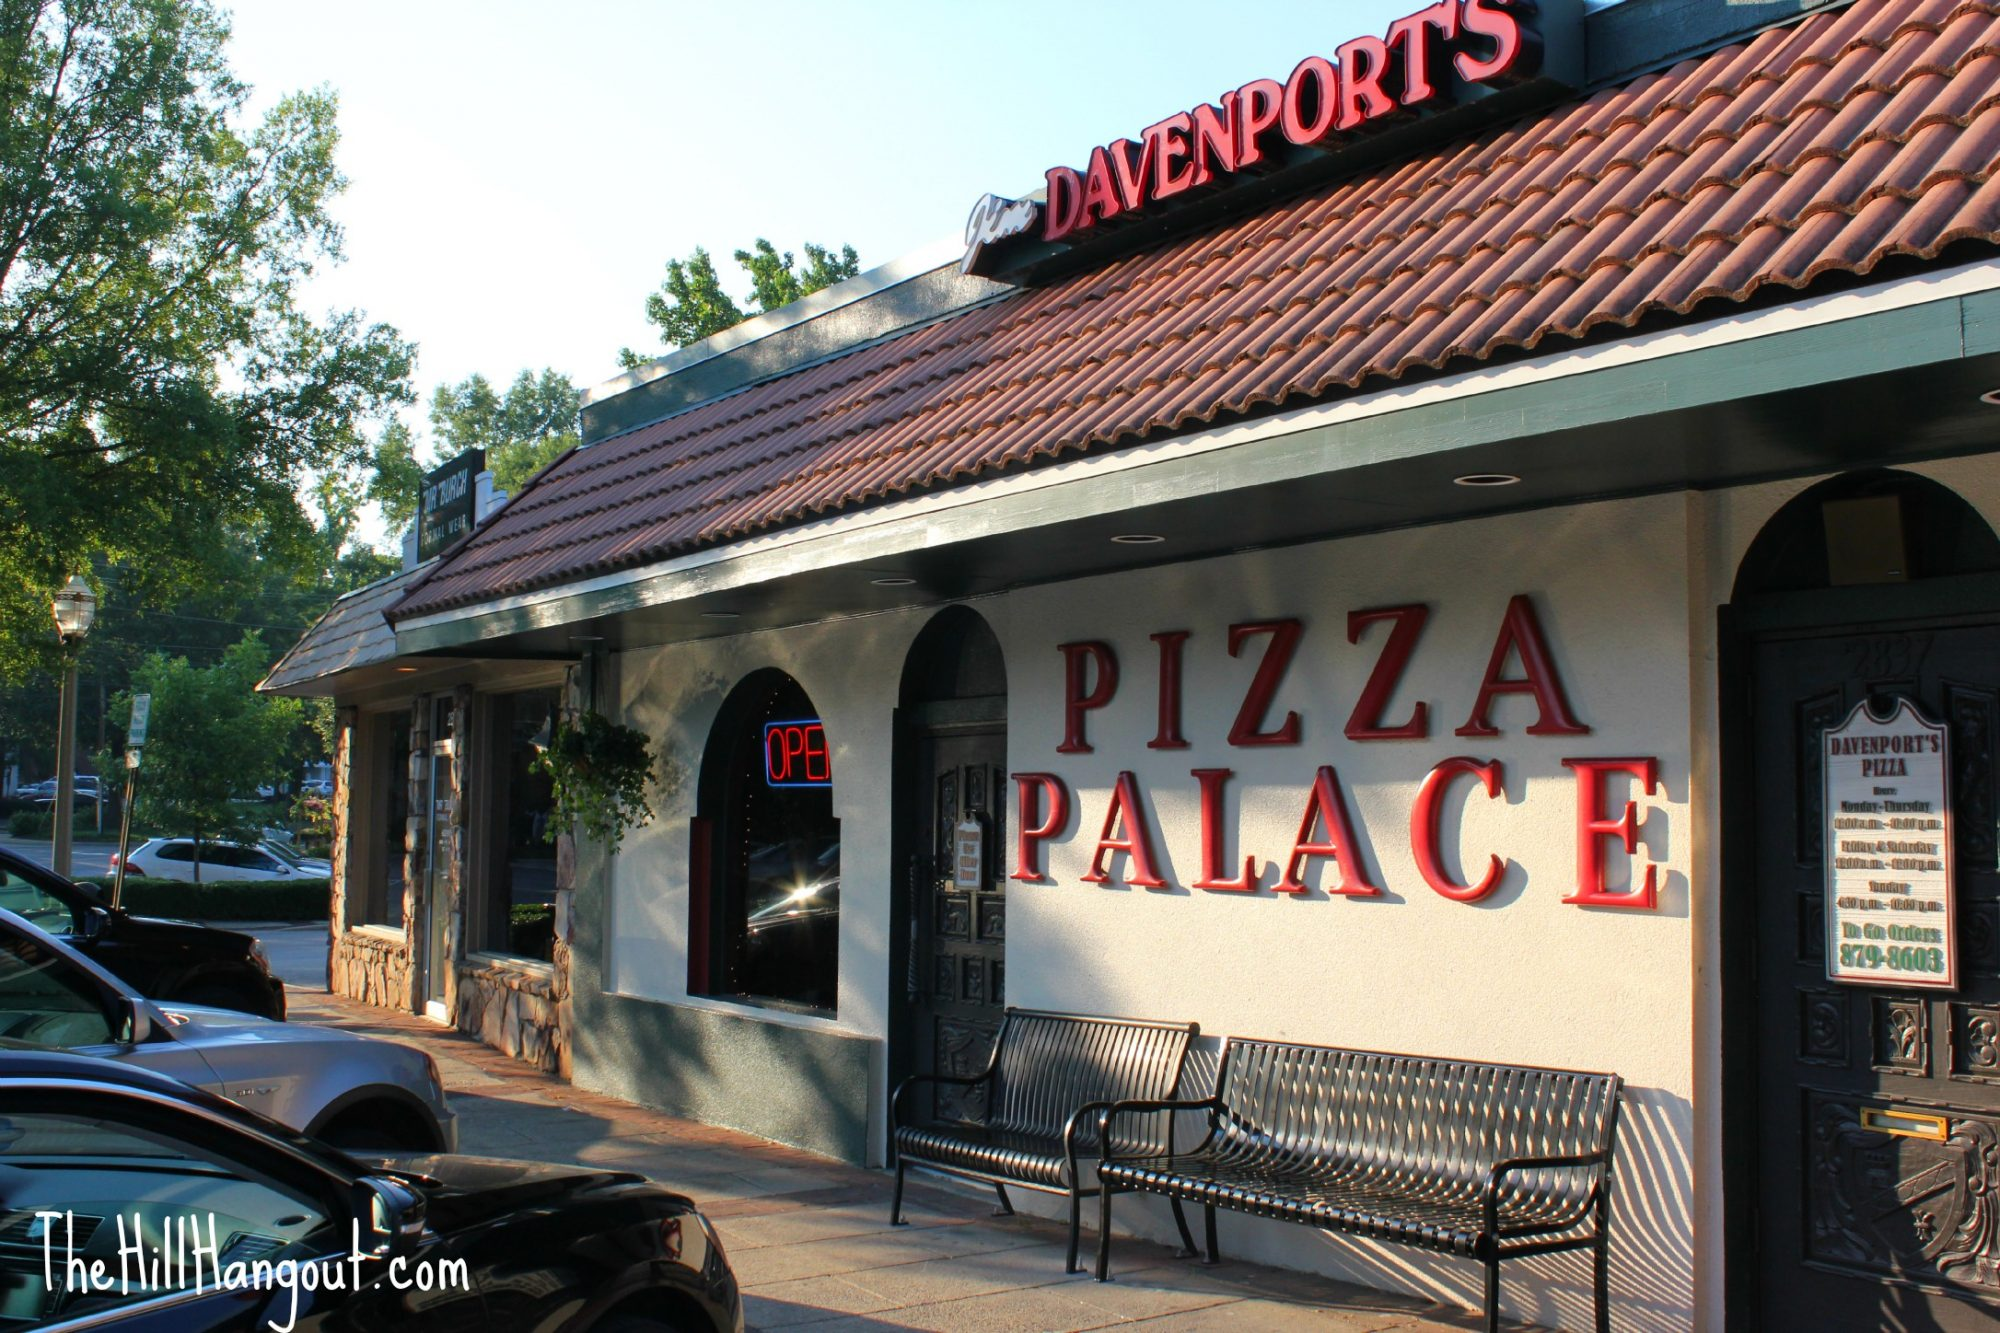 Davenport's Pizza